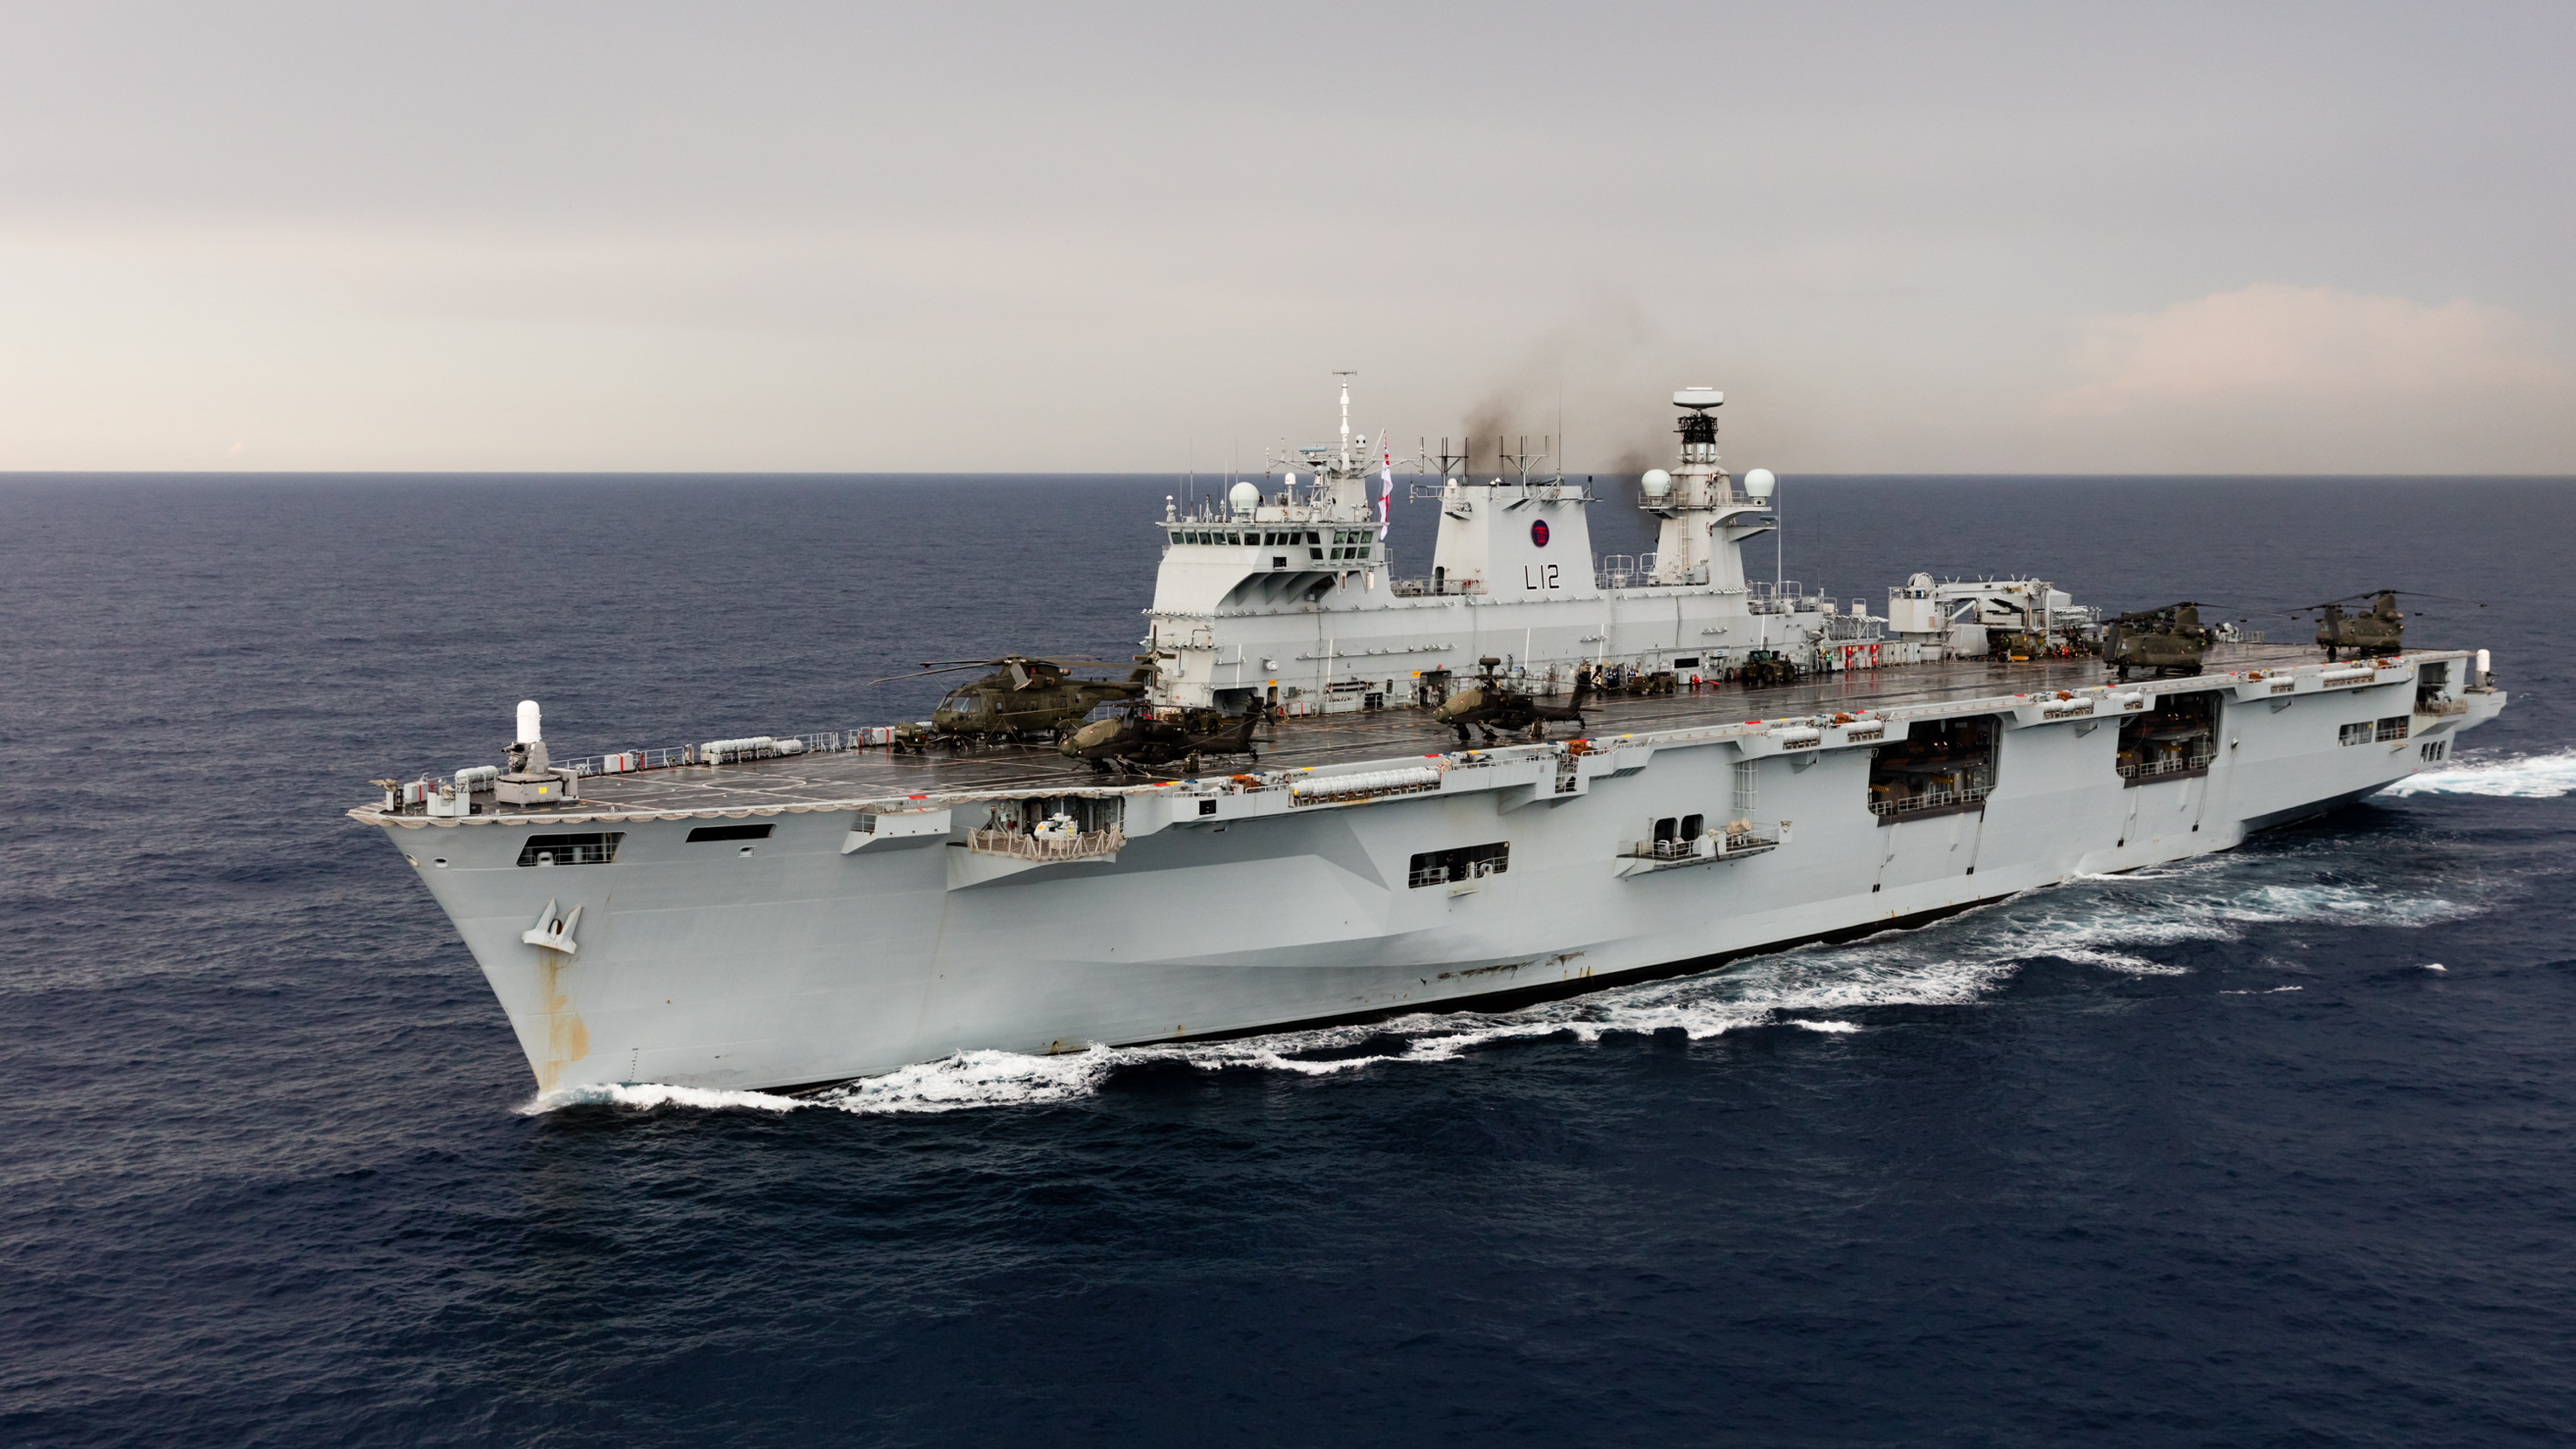 Helicopter carrier HMS Ocean (L12) - Page 2 34979288265_804f7ee461_o